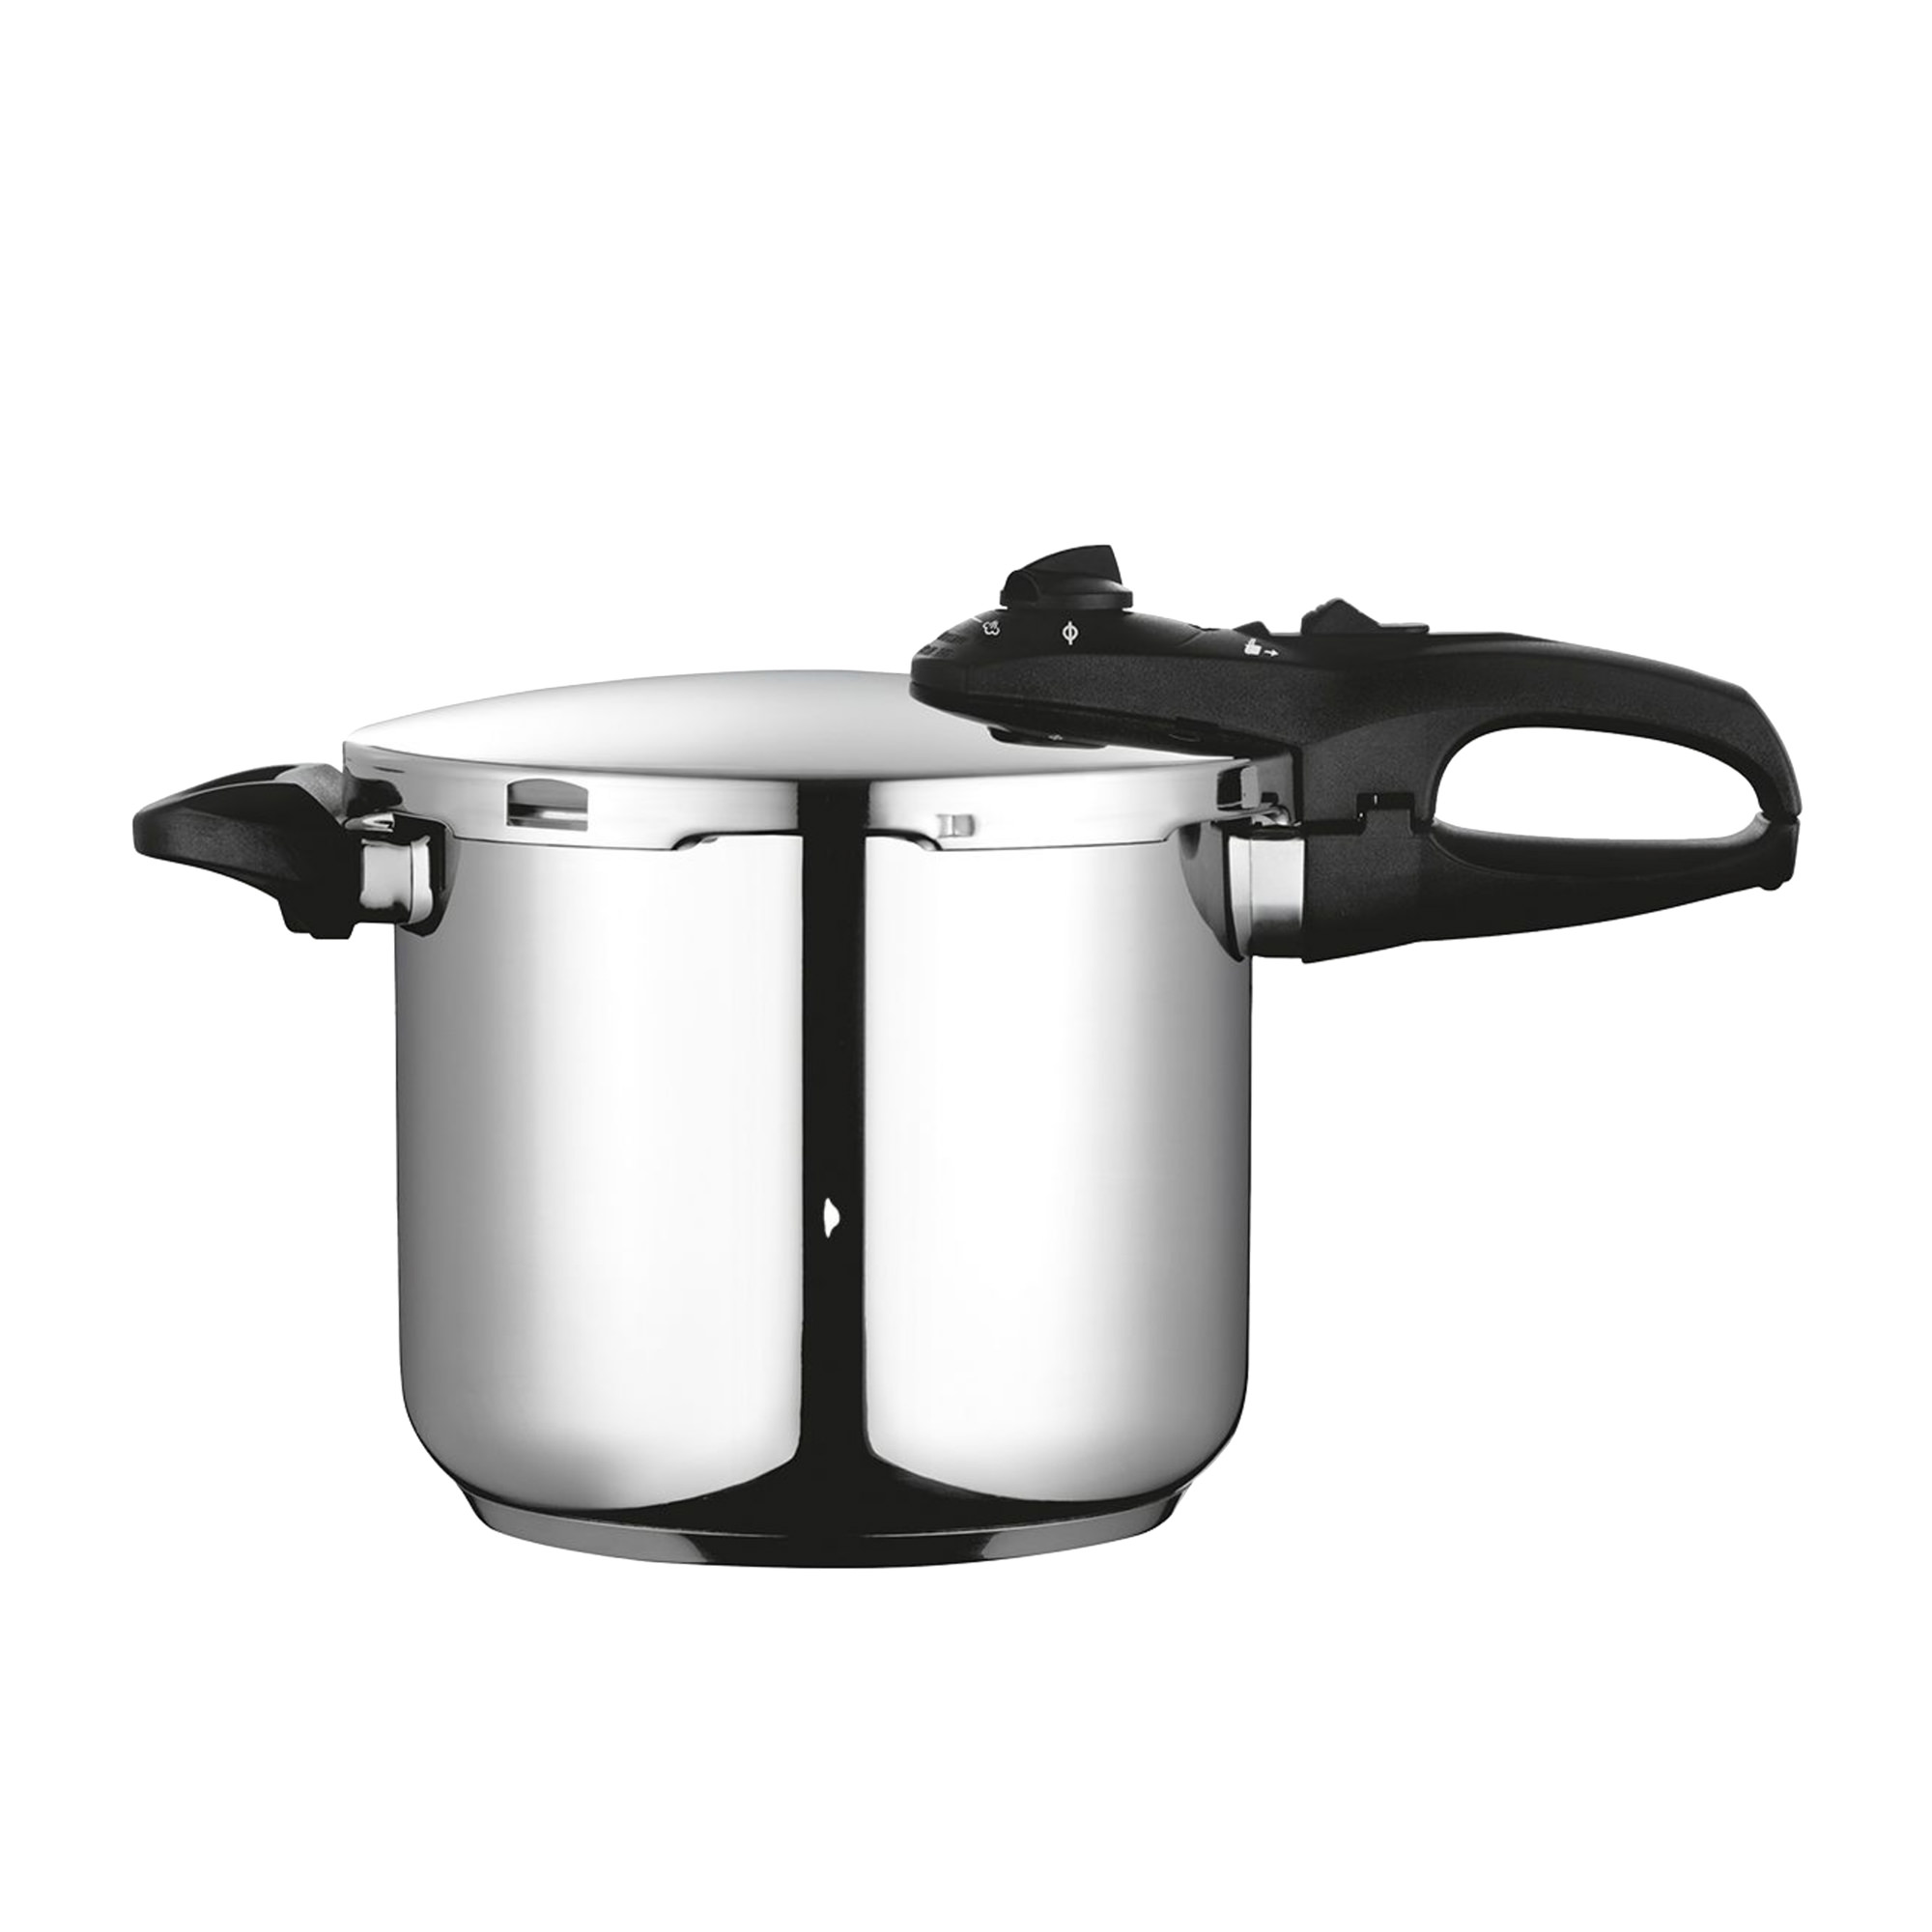 Fagor Duo Stainless Steel Pressure Cooker 7.5L